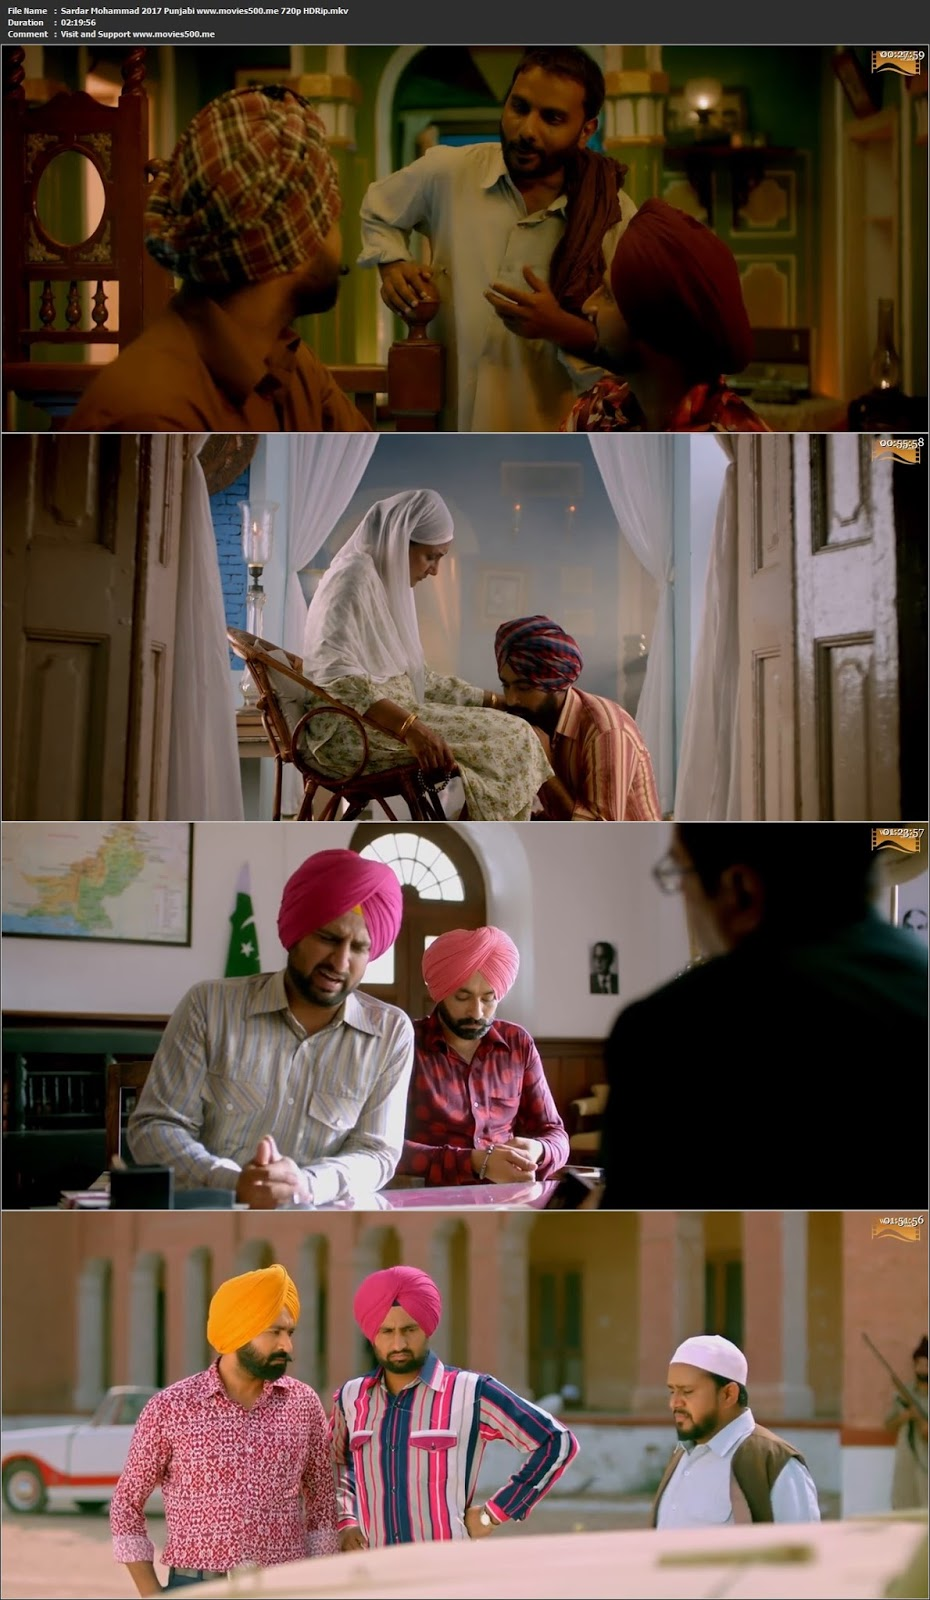 Sardar Mohammad 2017 Punjabi Full Movie HDRip 720p at lucysdoggrooming.com